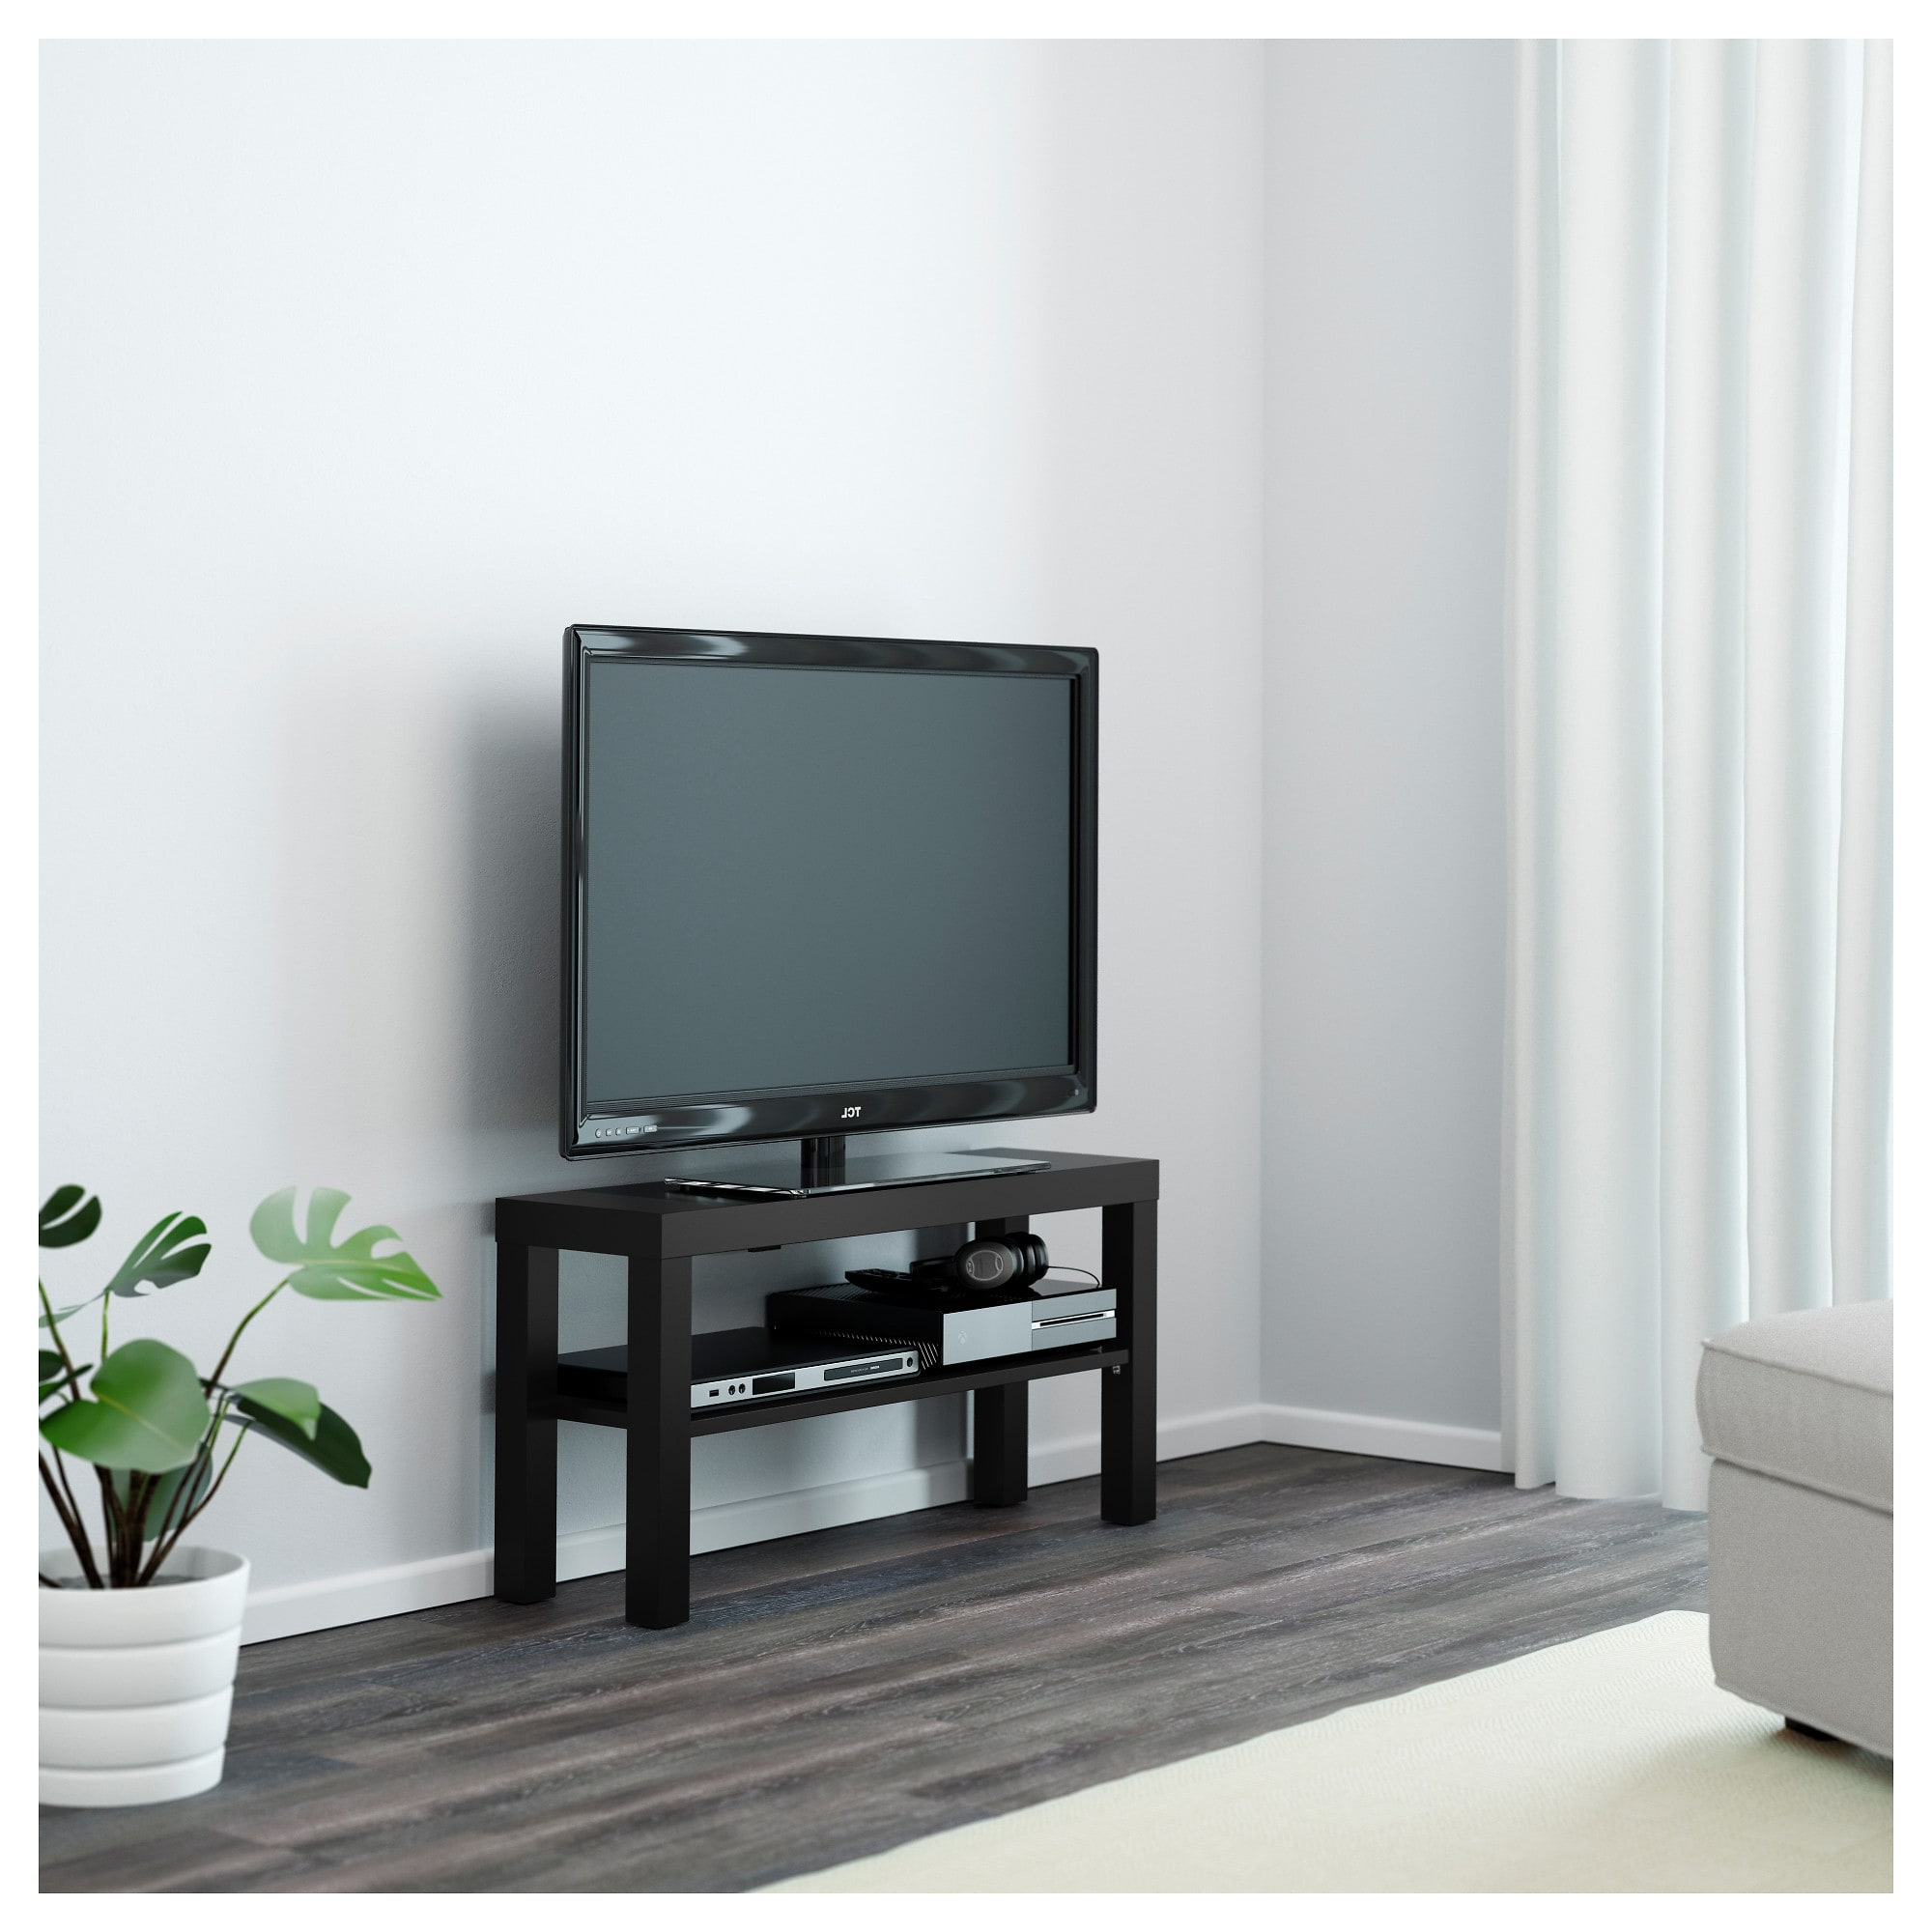 Lack Tv Bench Black 90 X 26 X 45 Cm – Ikea With Regard To Well Known Ikea Tv Console Tables (View 16 of 20)